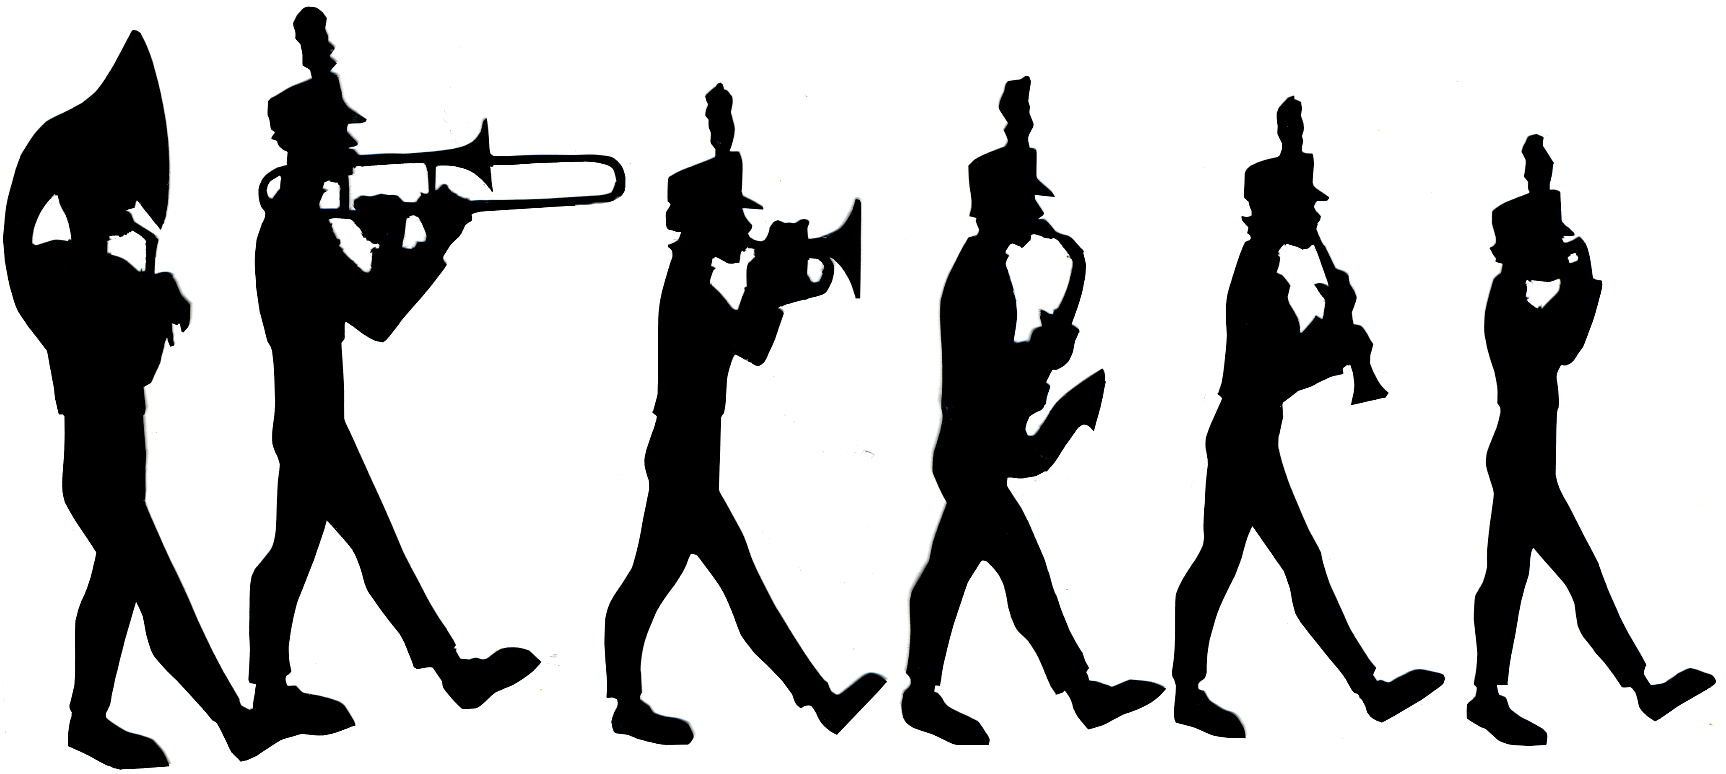 marching band clipart silhouette at getdrawings com free for rh getdrawings com marching band cartoon clip art marching band clip art free